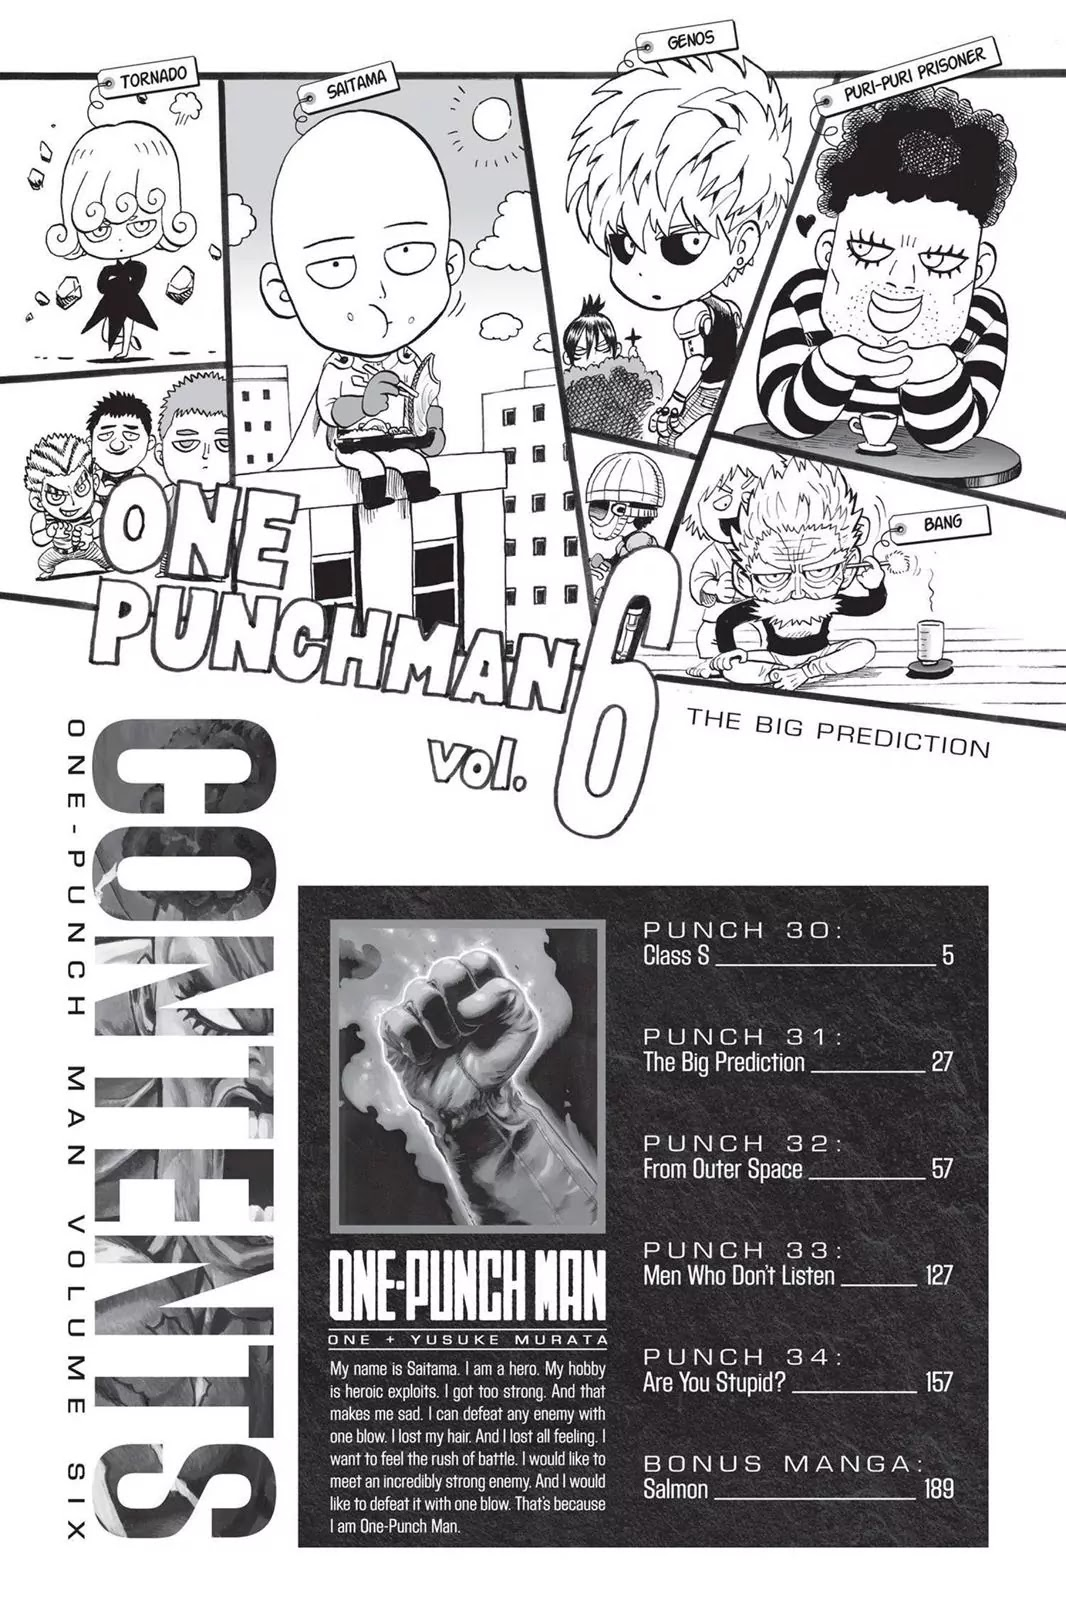 Pin by Margaret Brungardt on One Punch Man | One punch man ...